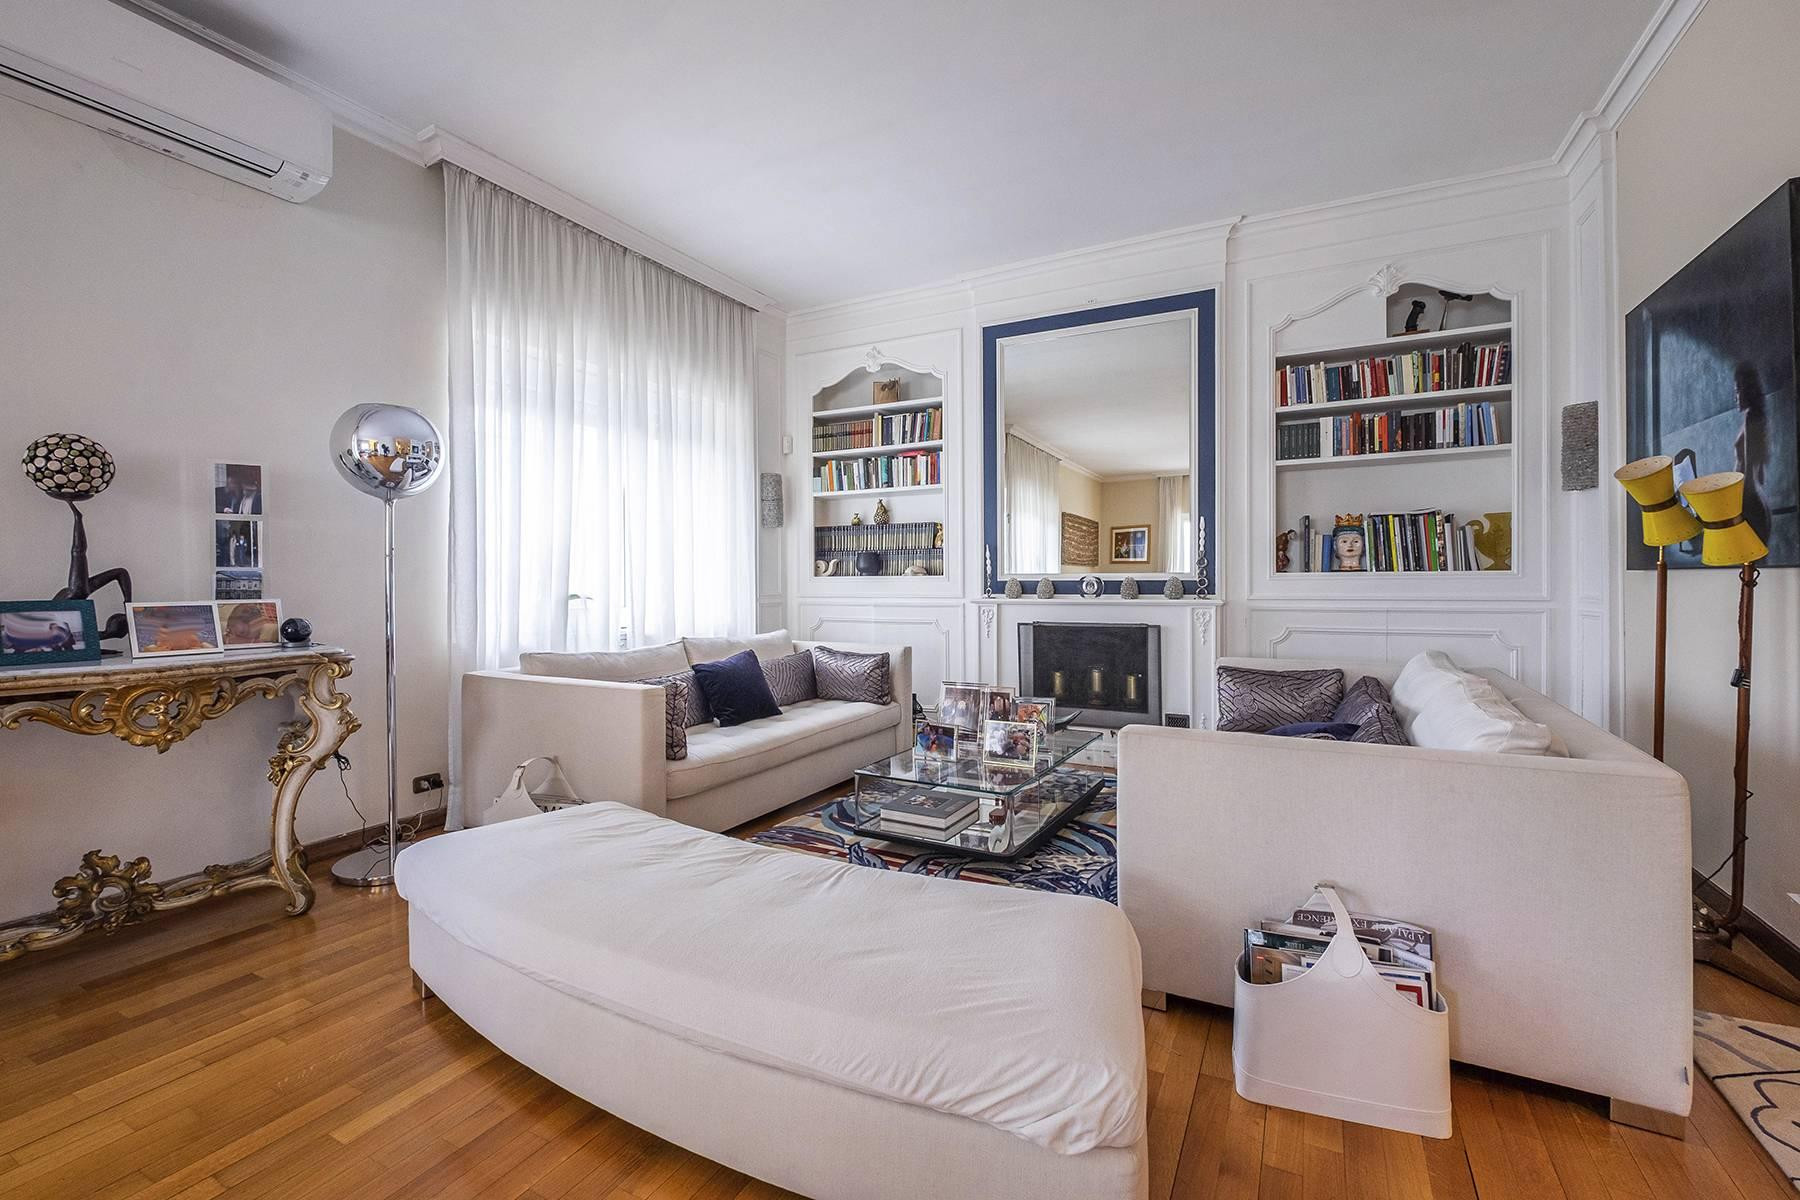 Modern penthouse with stunning 70 sqm terrace a stone's throw from Villa Borghese - 4